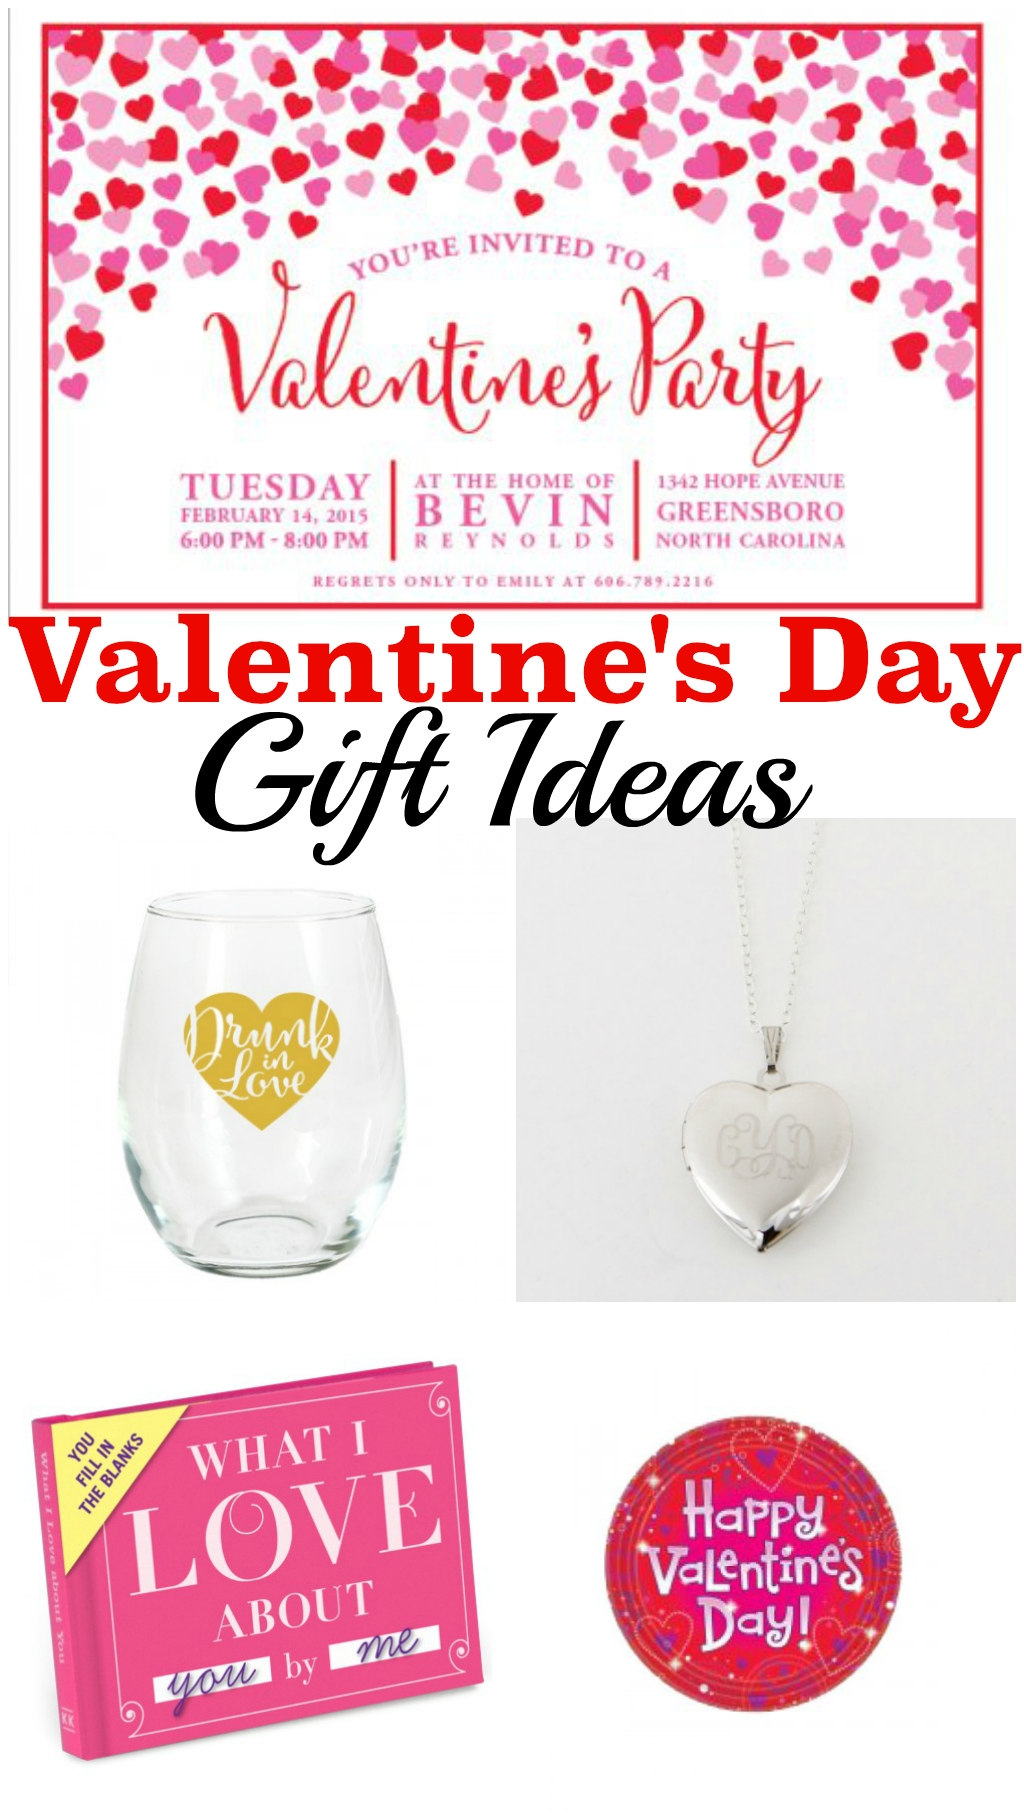 Celebrating with someone special this year? From traditional engraved Valentines Day gift ideas to fun surprises, you'll discover some great gift ideas.